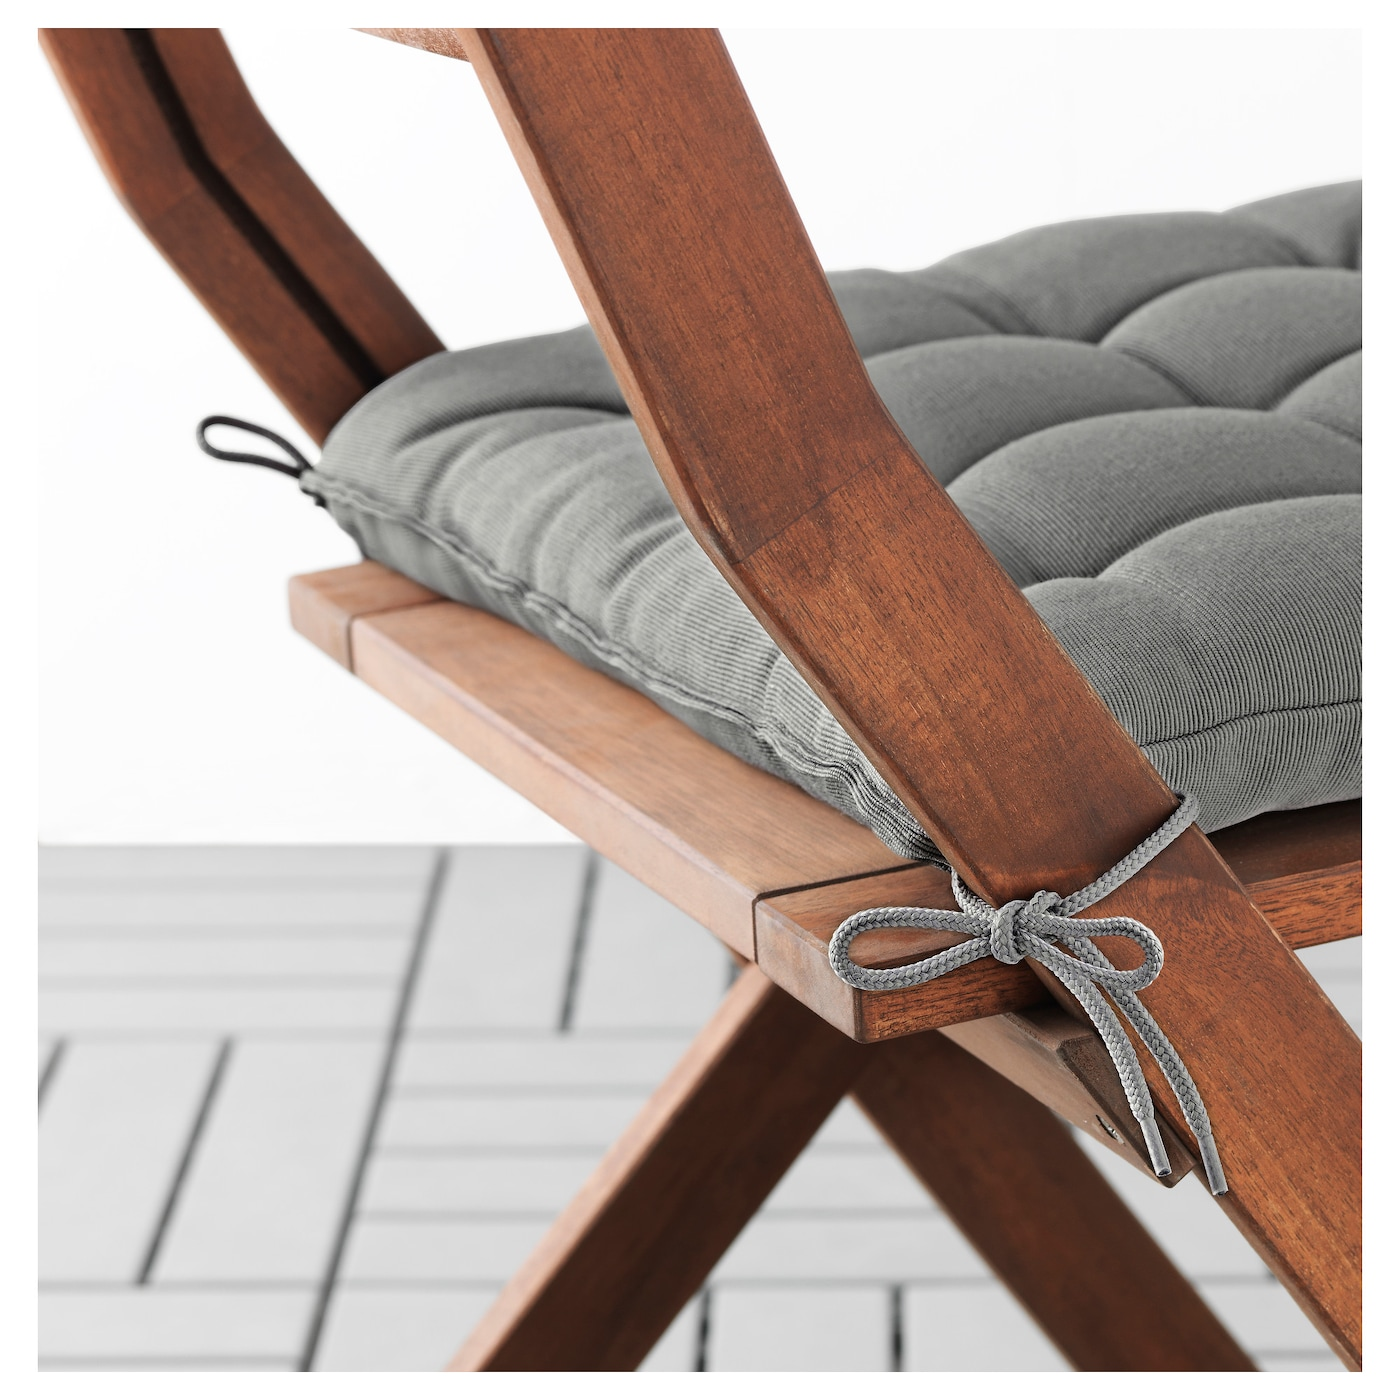 IKEA HÅLLÖ chair cushion, outdoor Ties keep the cushion firmly in place on the chair.